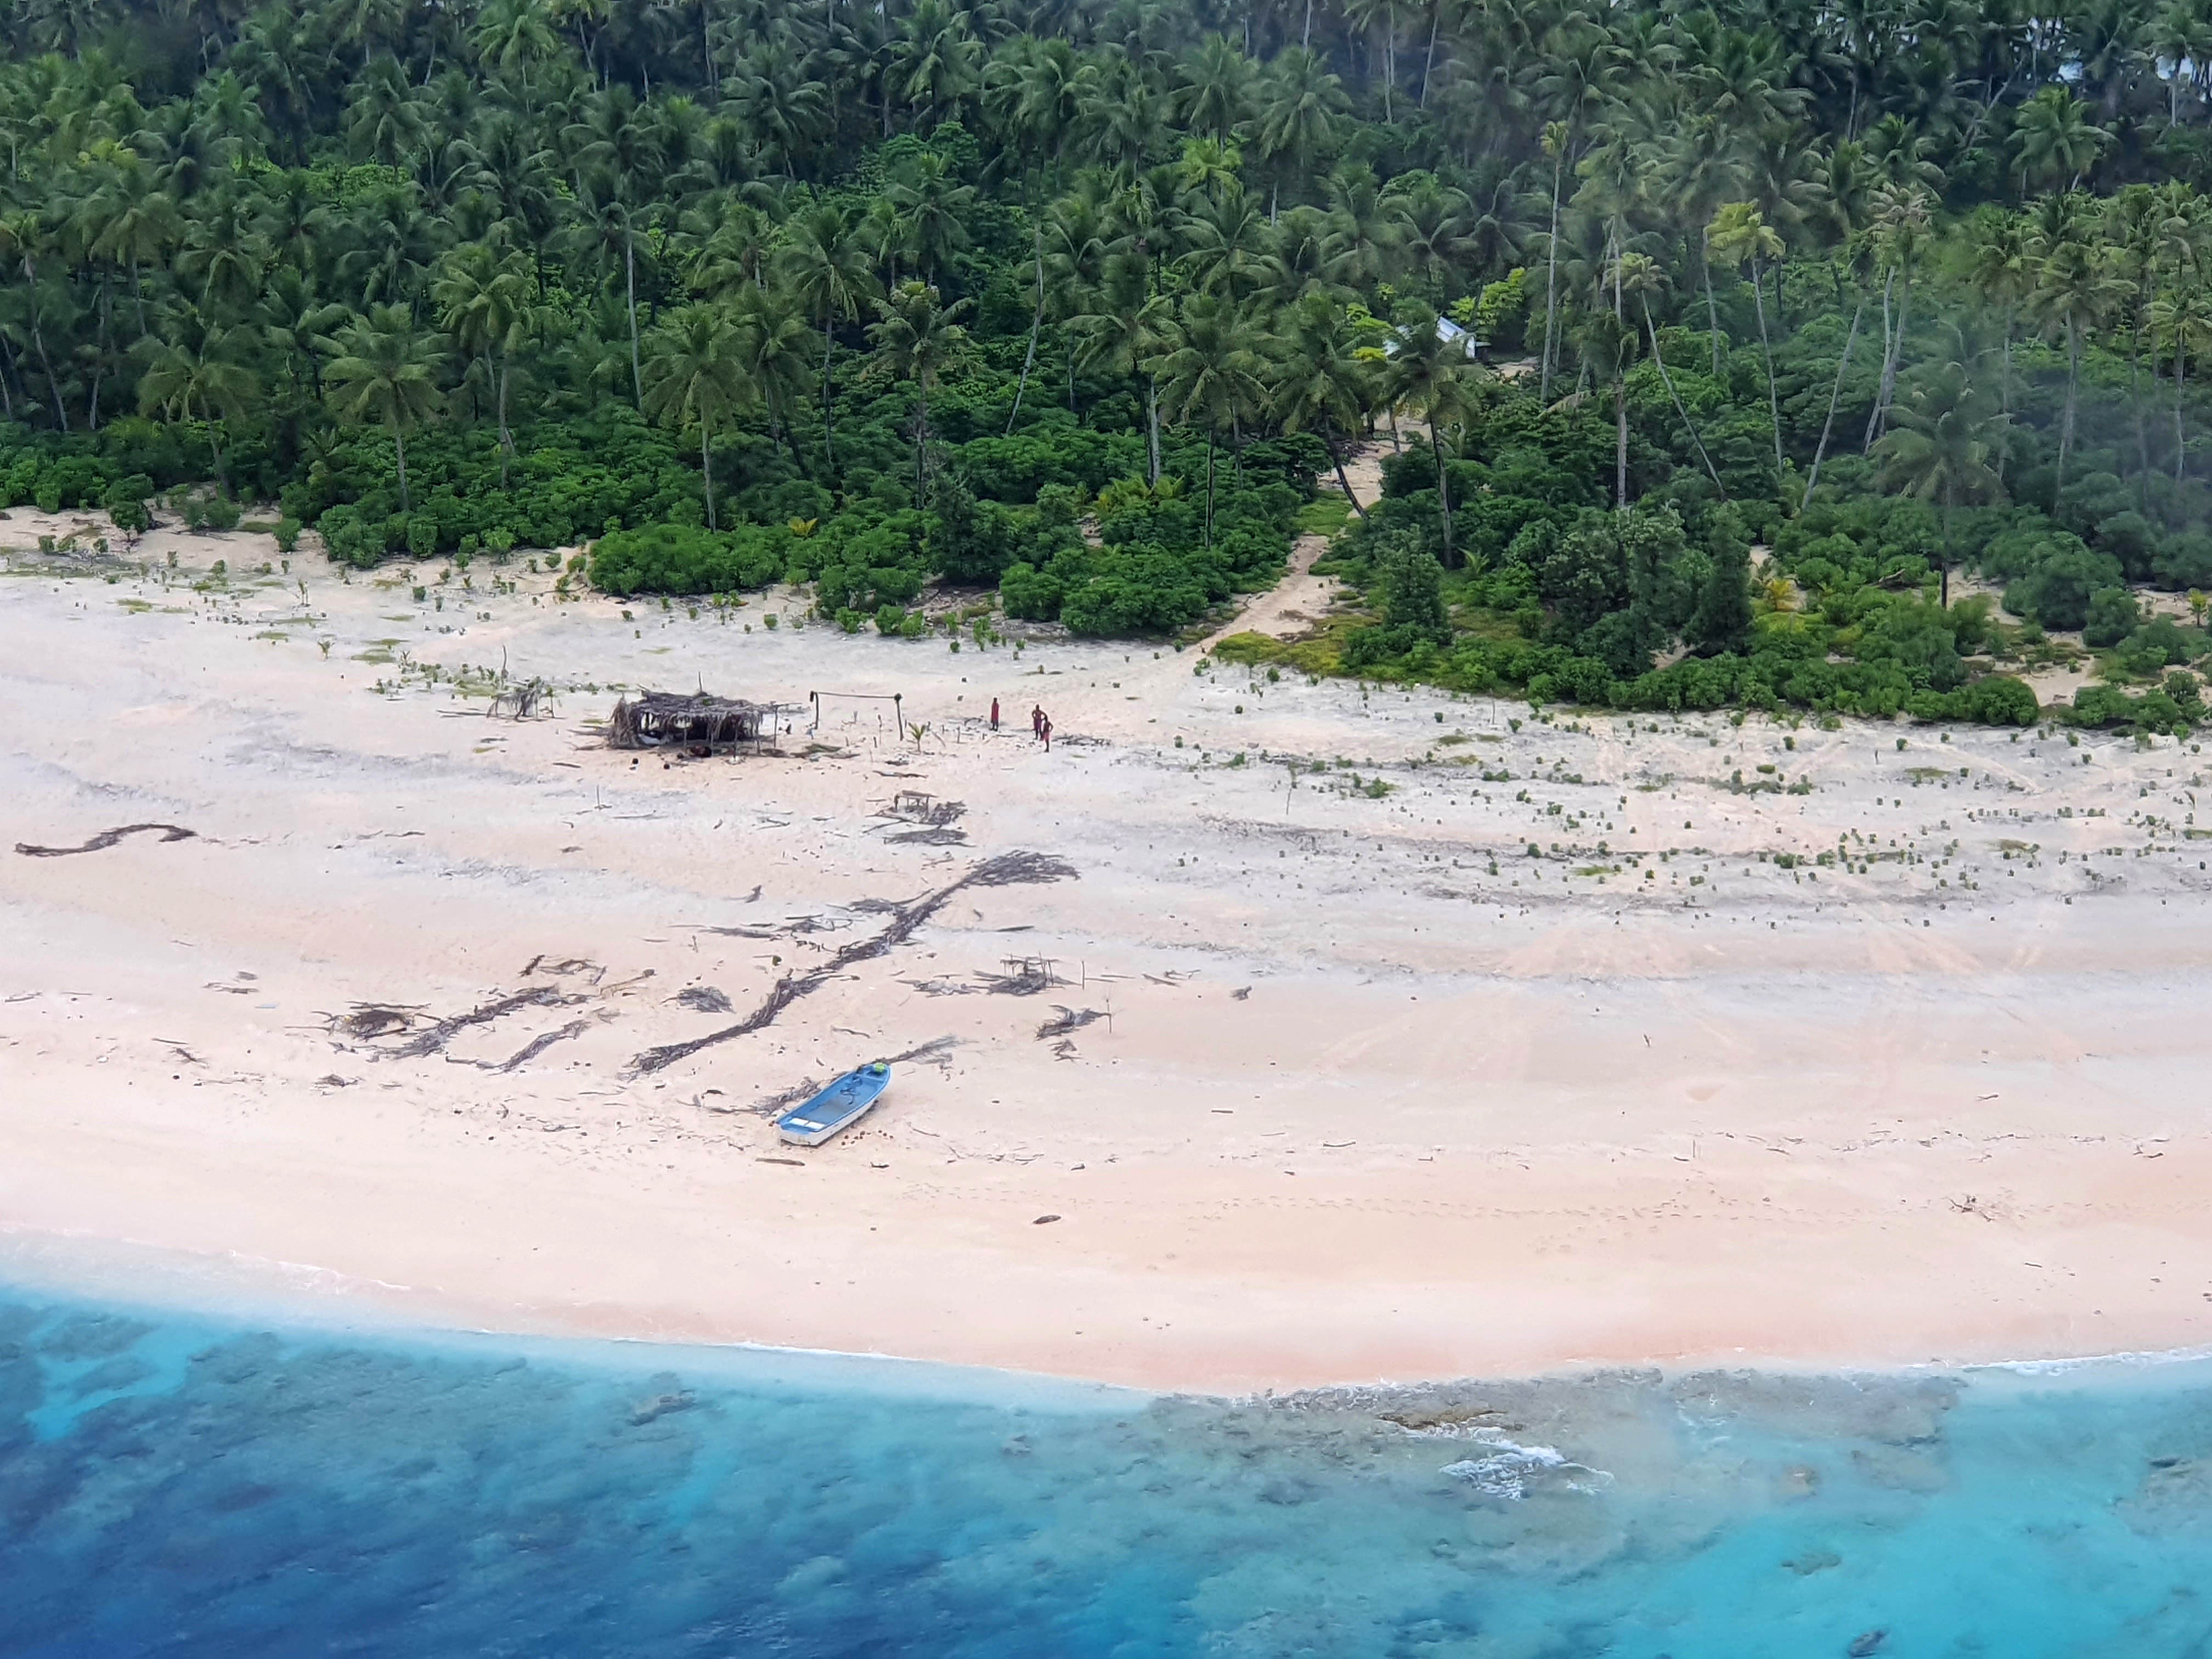 How Three Men Stranded on an Island Were Rescued